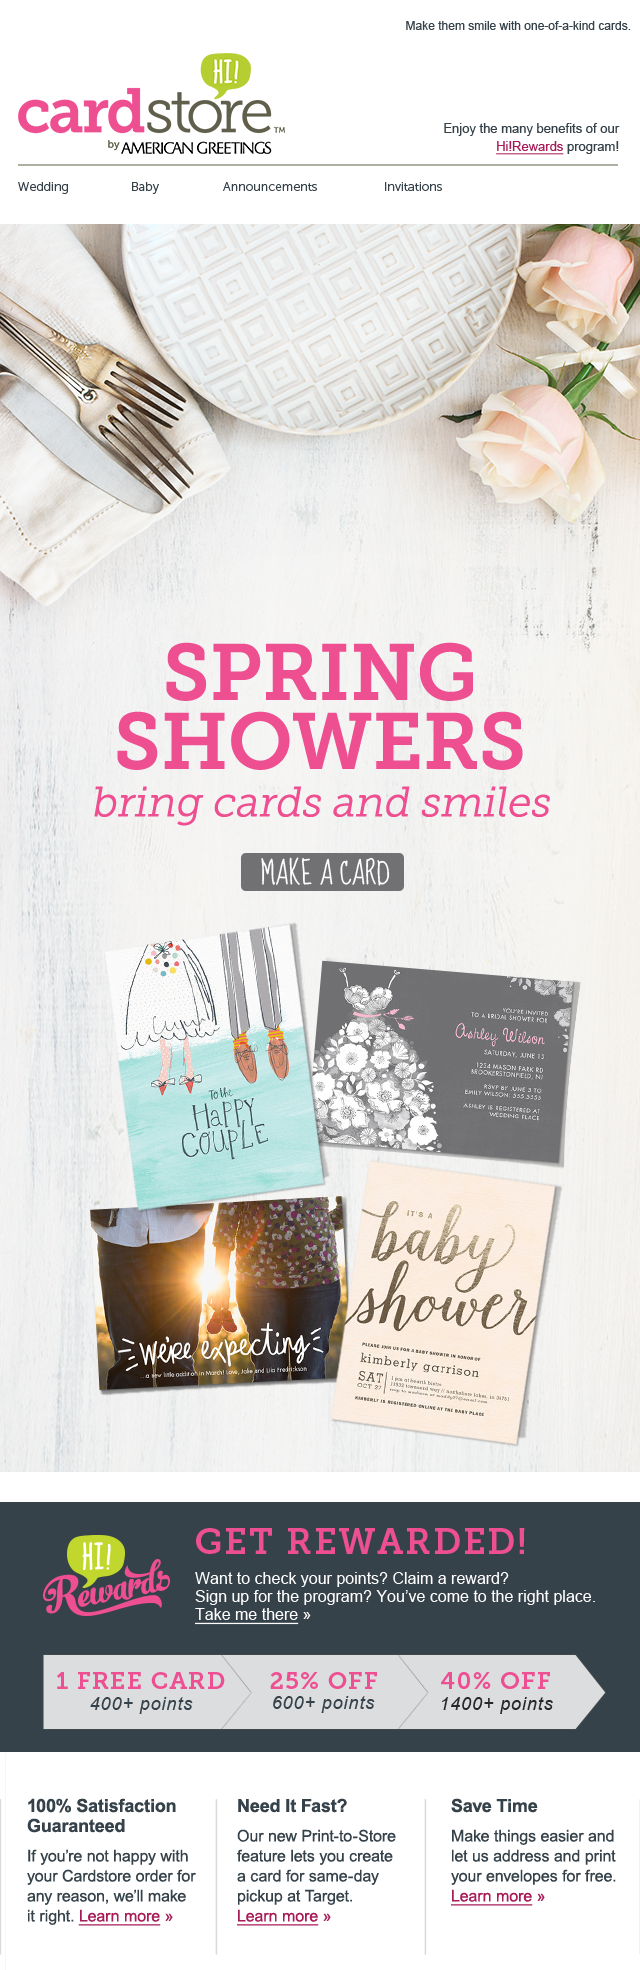 American greetings nathalie mcclune a mothers day ad i helped create for instagram and facebook i drew storyboards directed several scenes provided art direction designed props and m4hsunfo